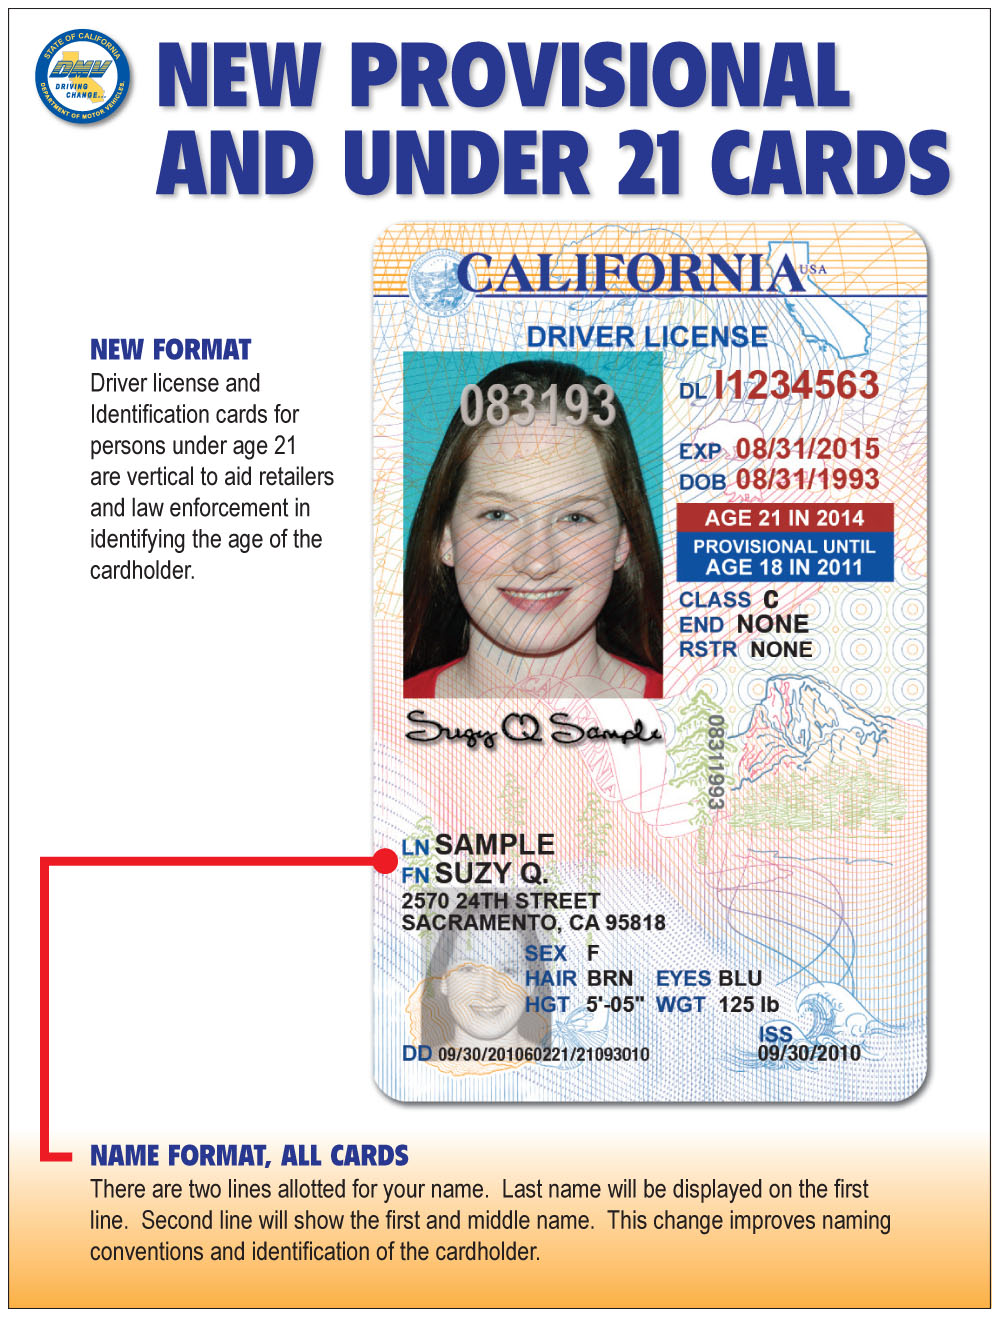 Displaying 20u0026gt; Images For - California Driver License 2014...